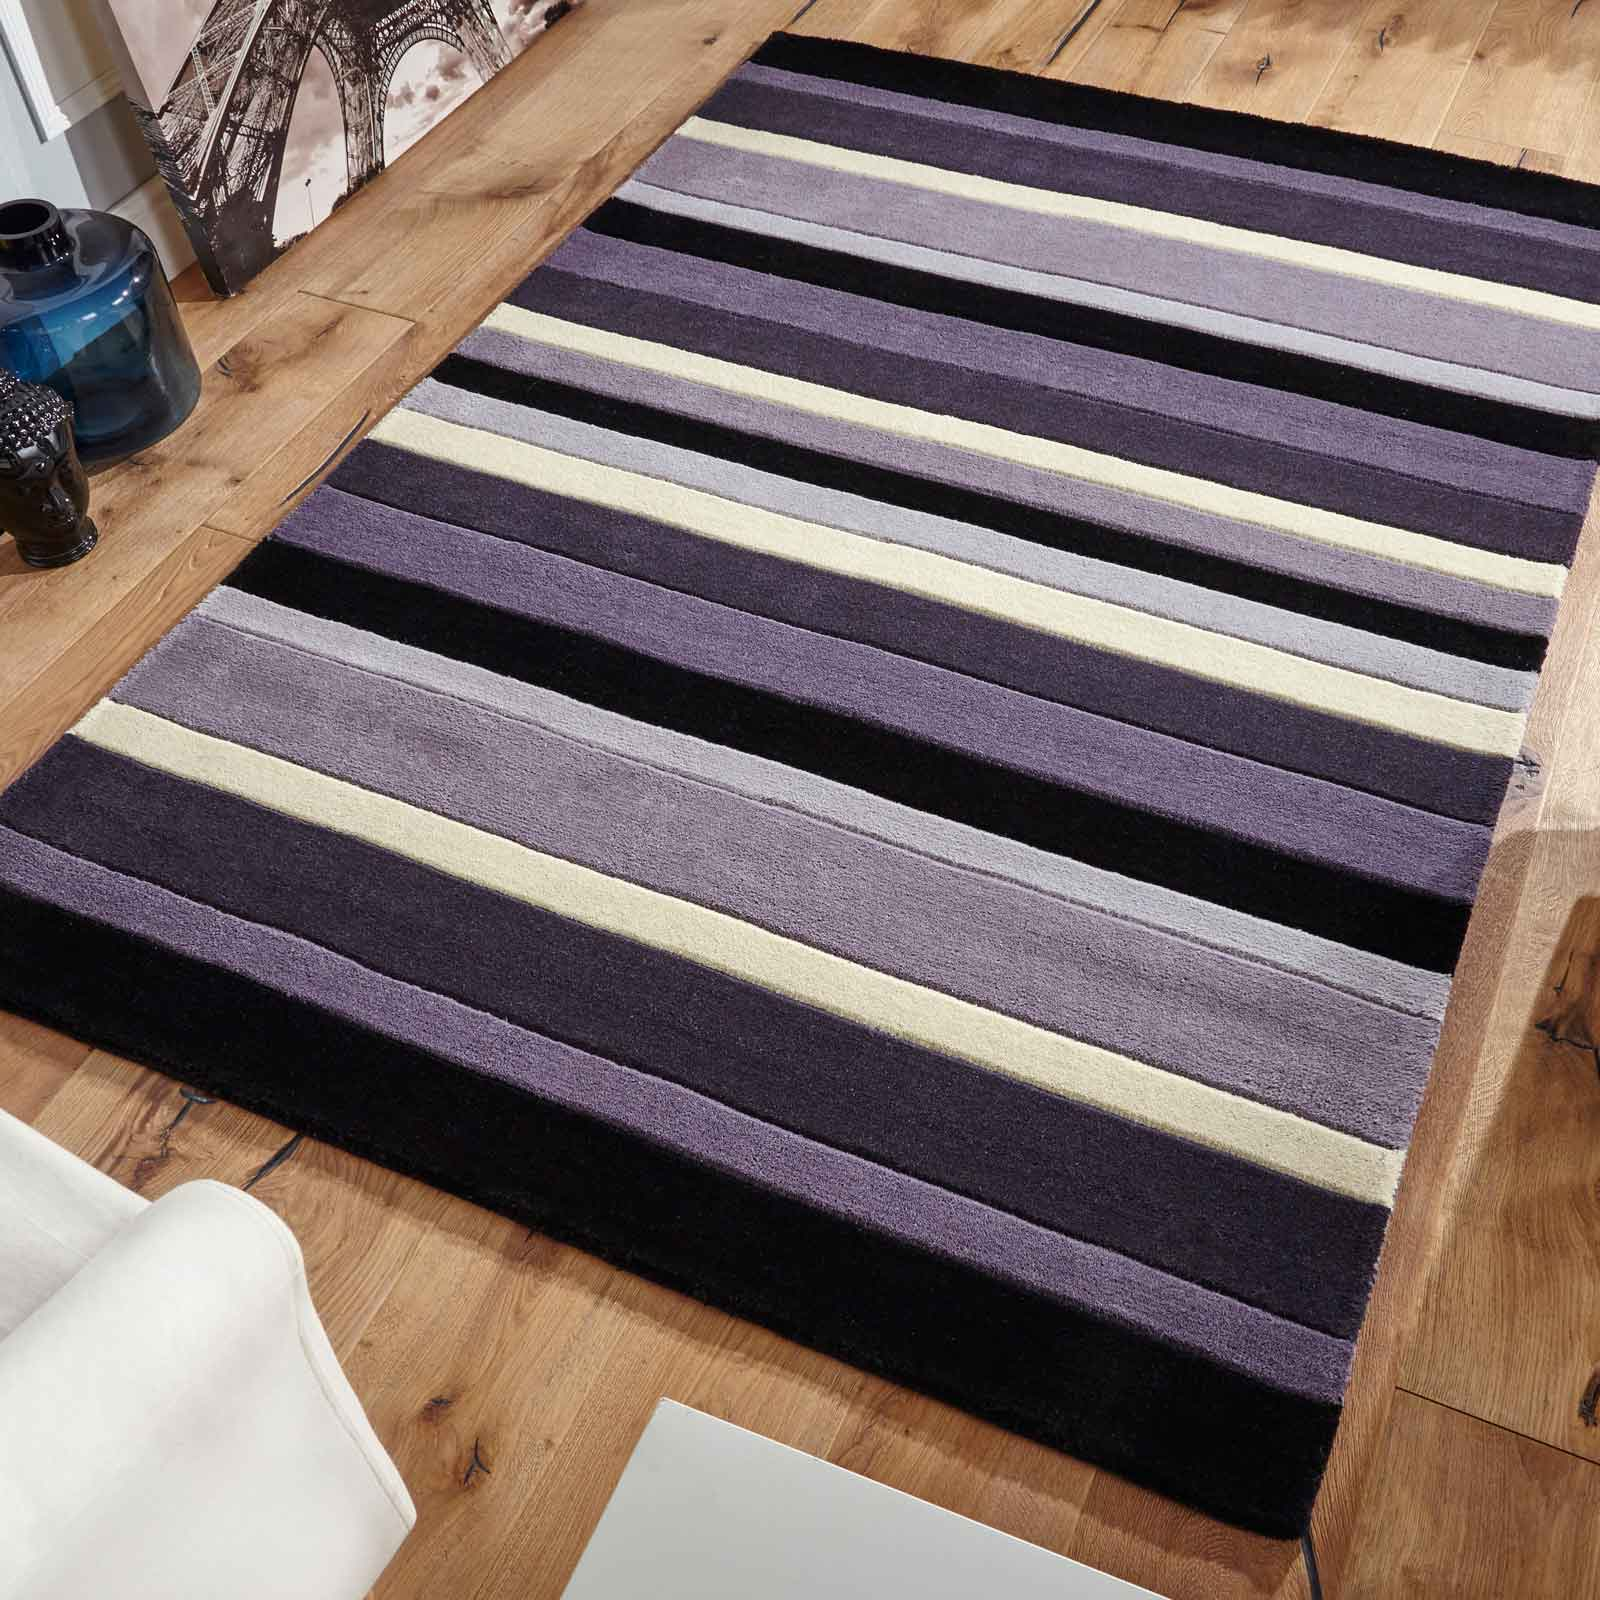 Jazz Stripes Wool Rugs in Grey